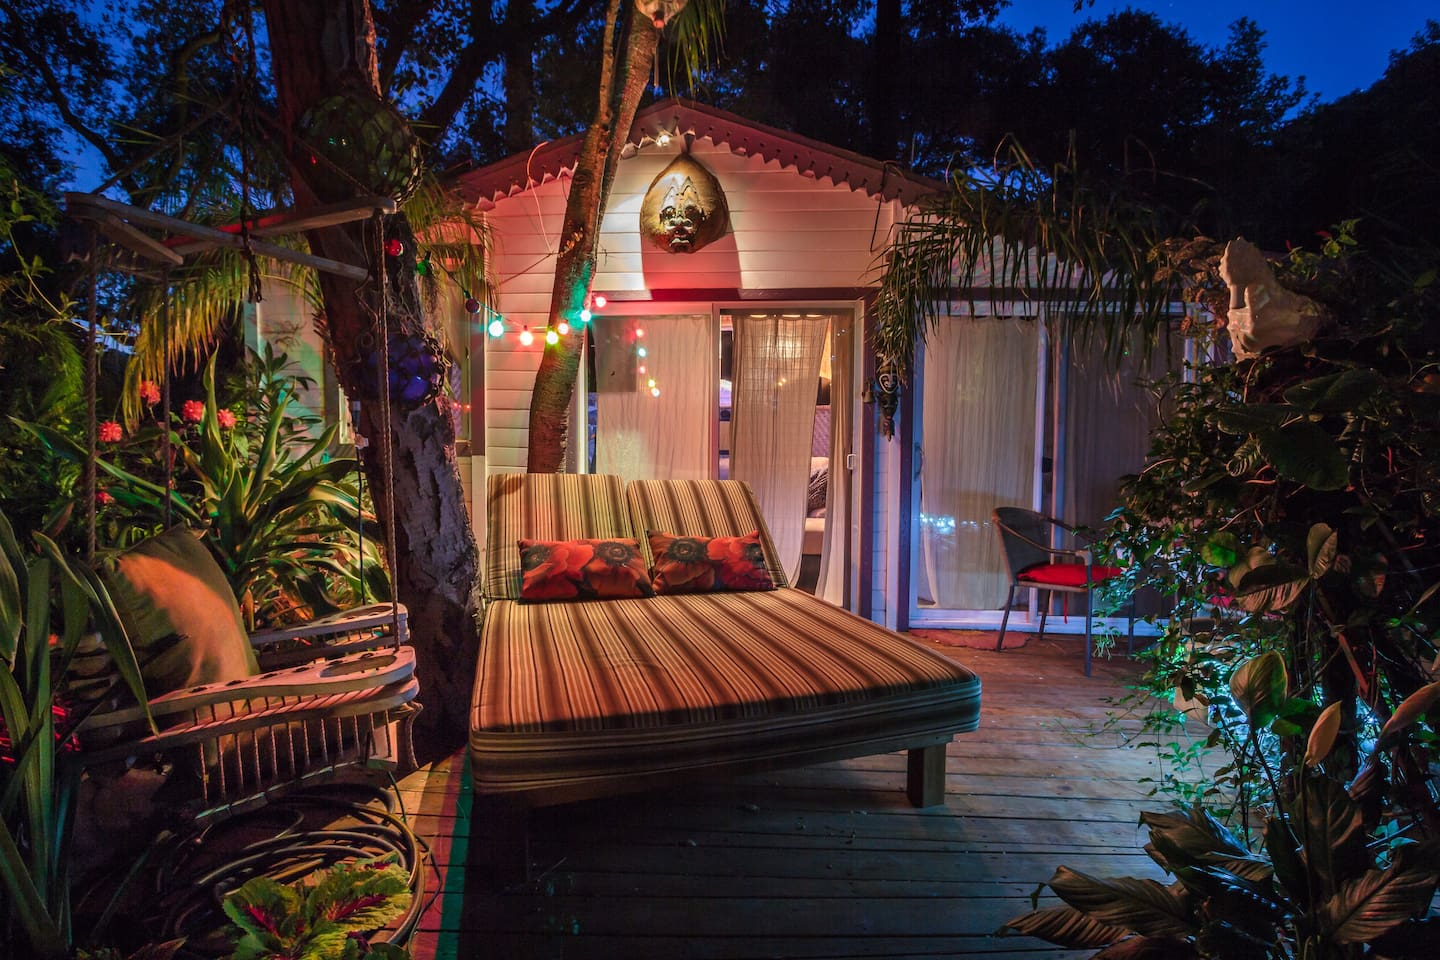 pirates of the caribbean getaway guesthouse for rent in topanga